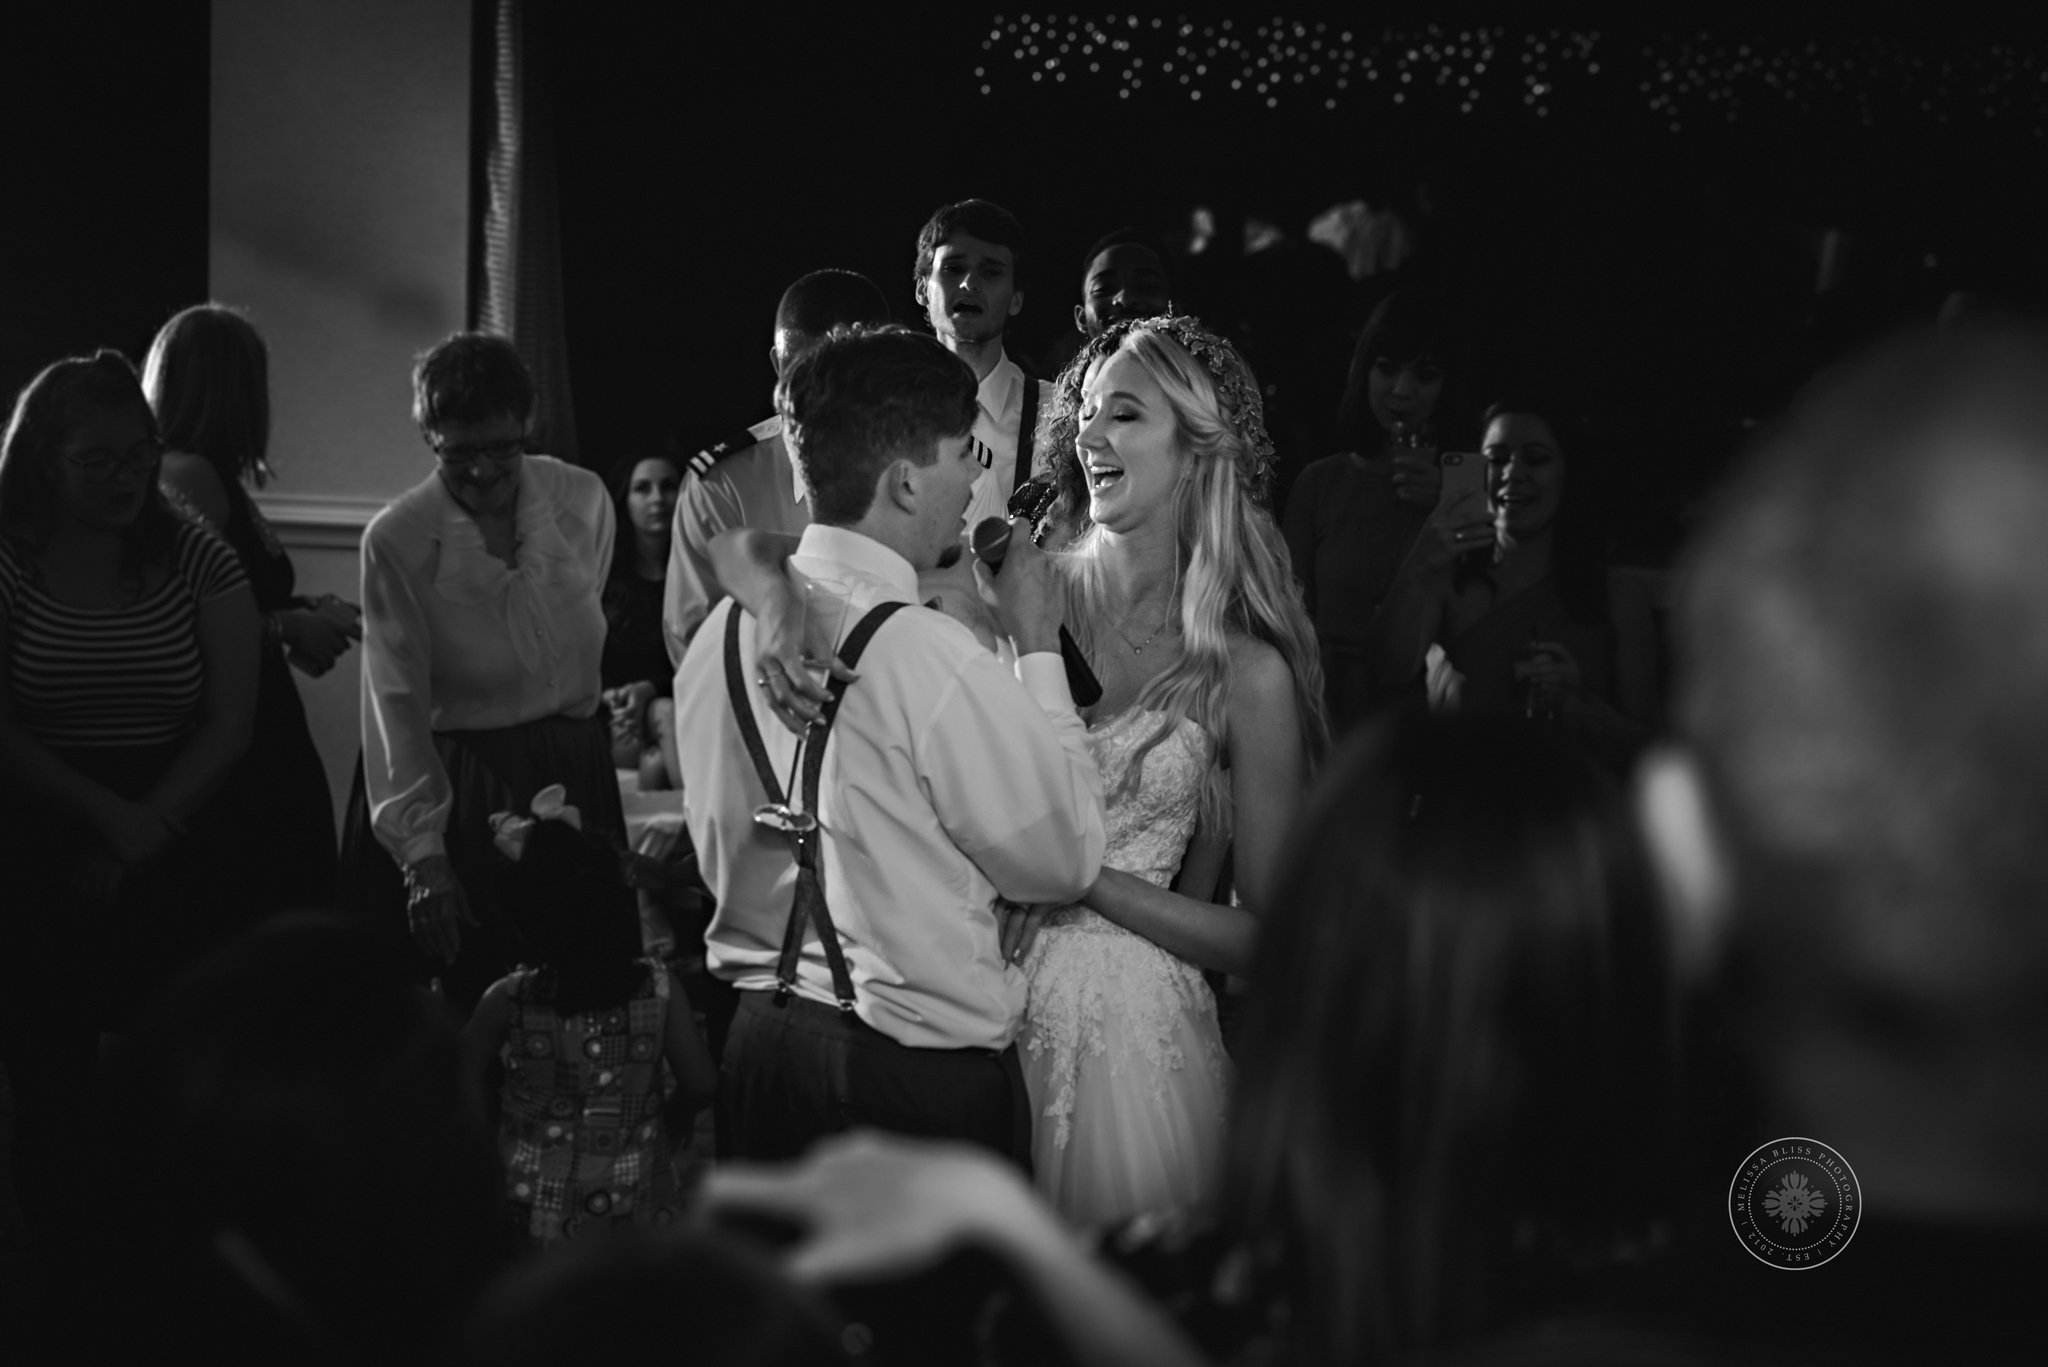 bride-and-groom-dancing-virginia-beach-wedding-photographers-melissa-bliss-photography